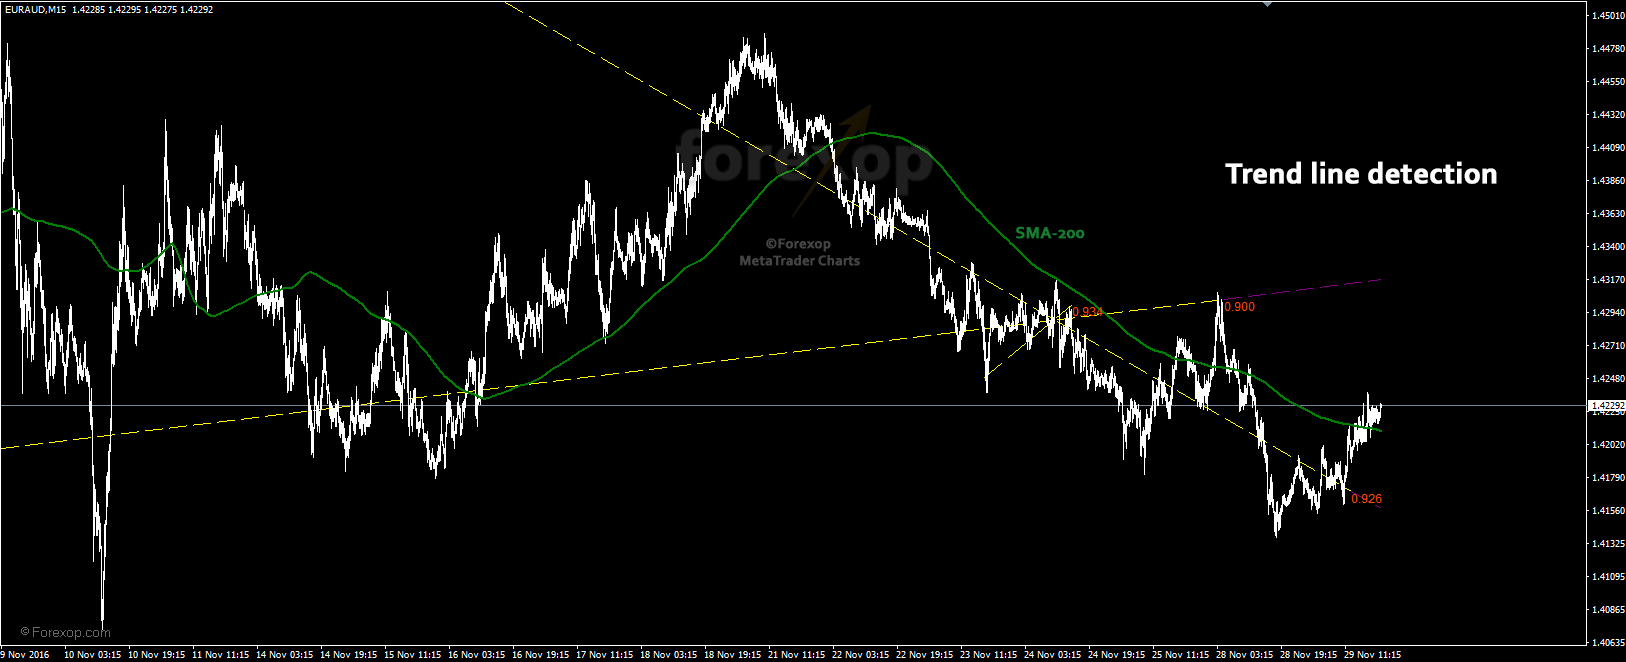 Figure 1: Trend lines detected in EURAUD, compared to the SMA 200